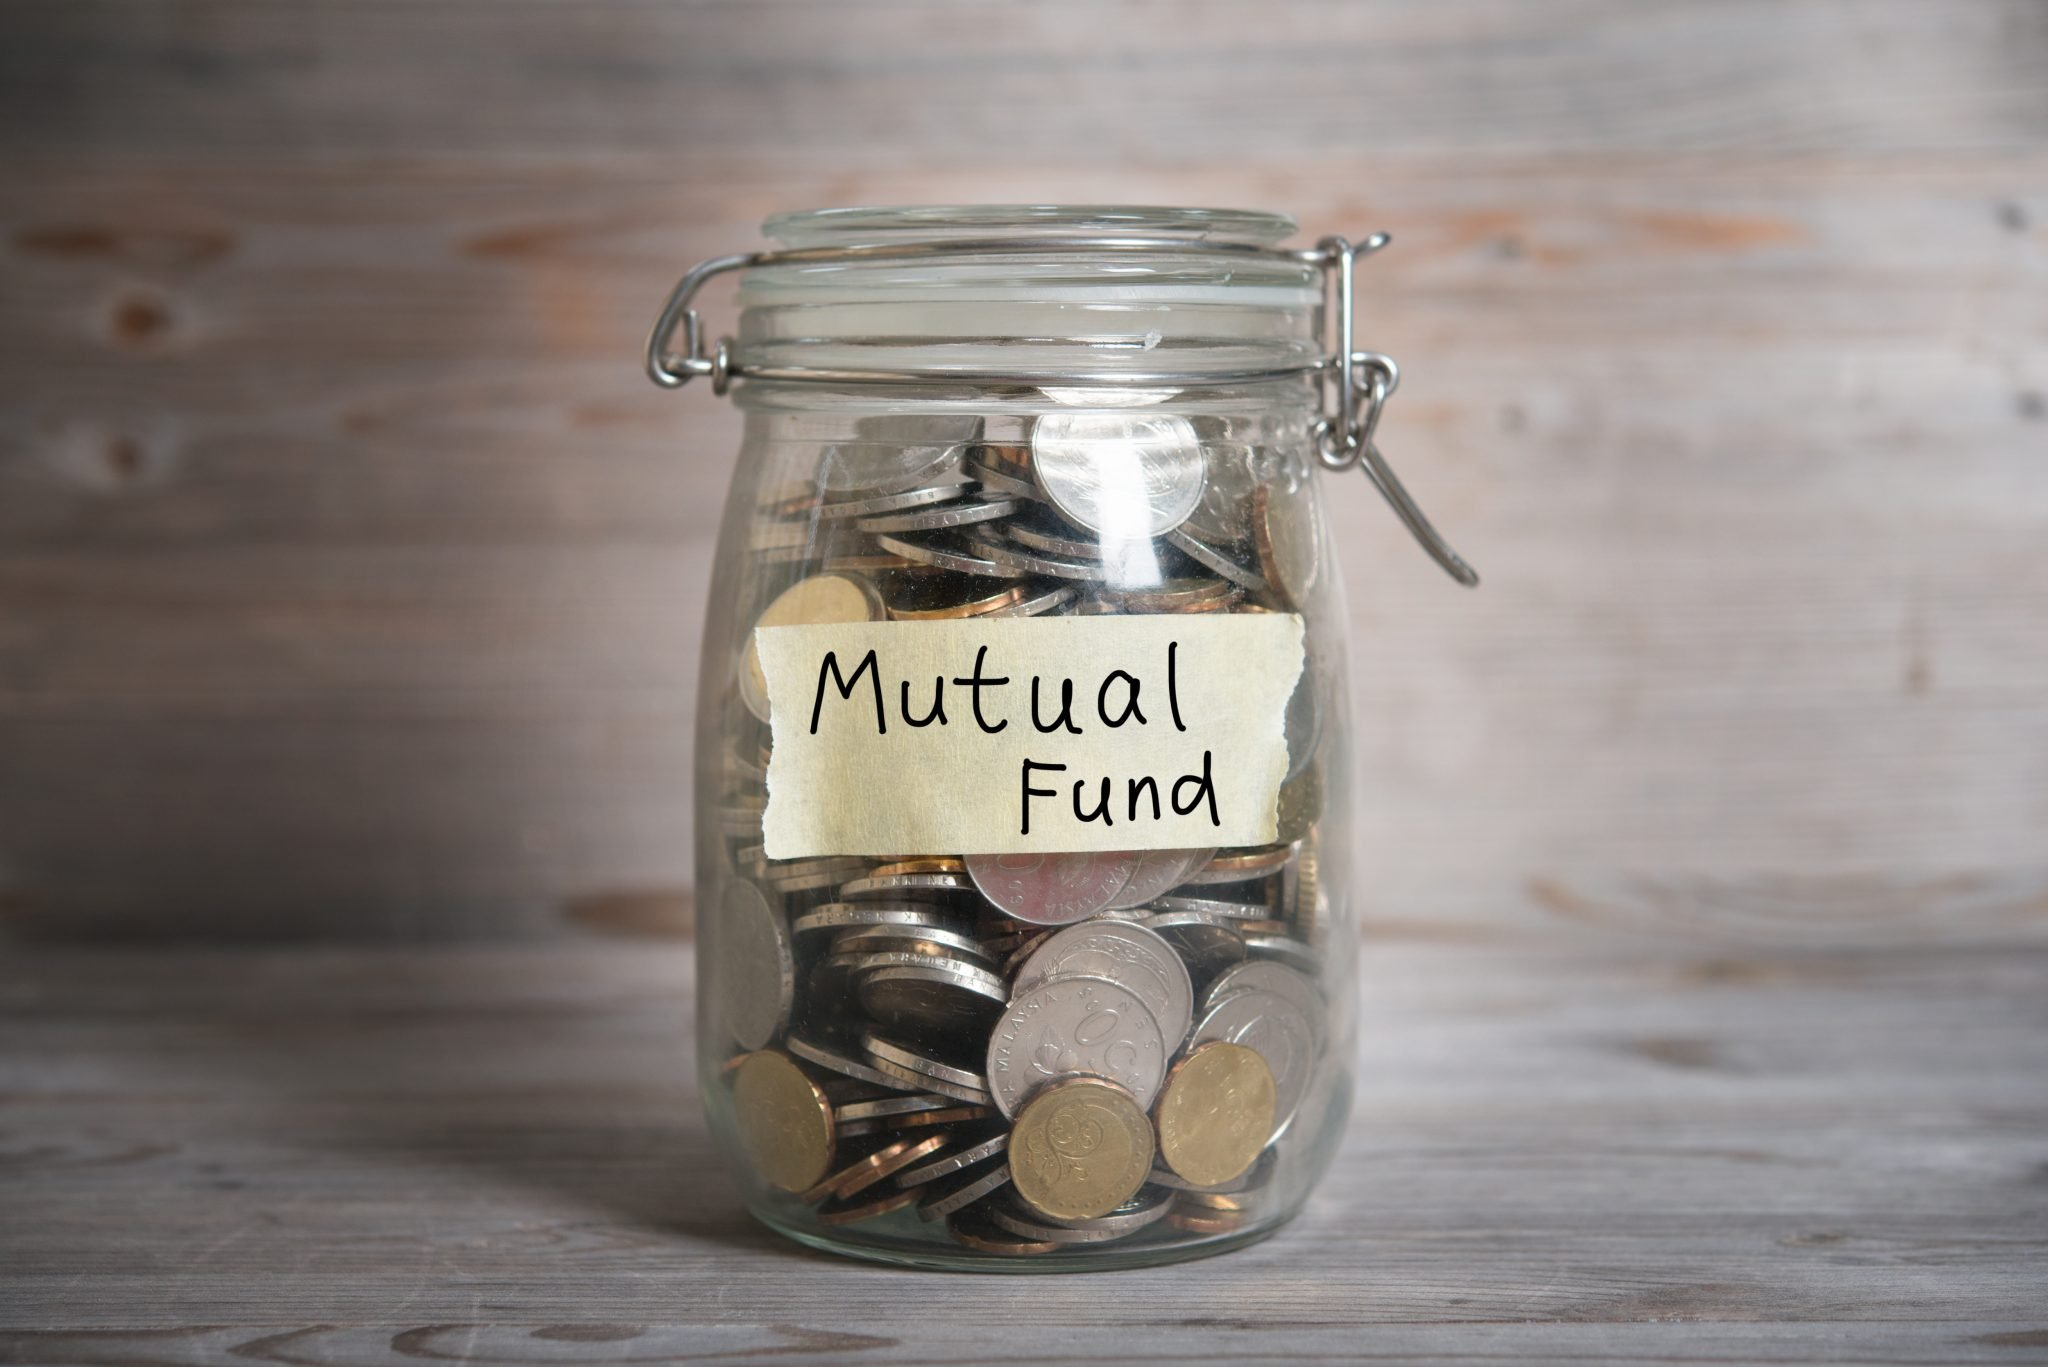 gross expense ratio of mutual fund